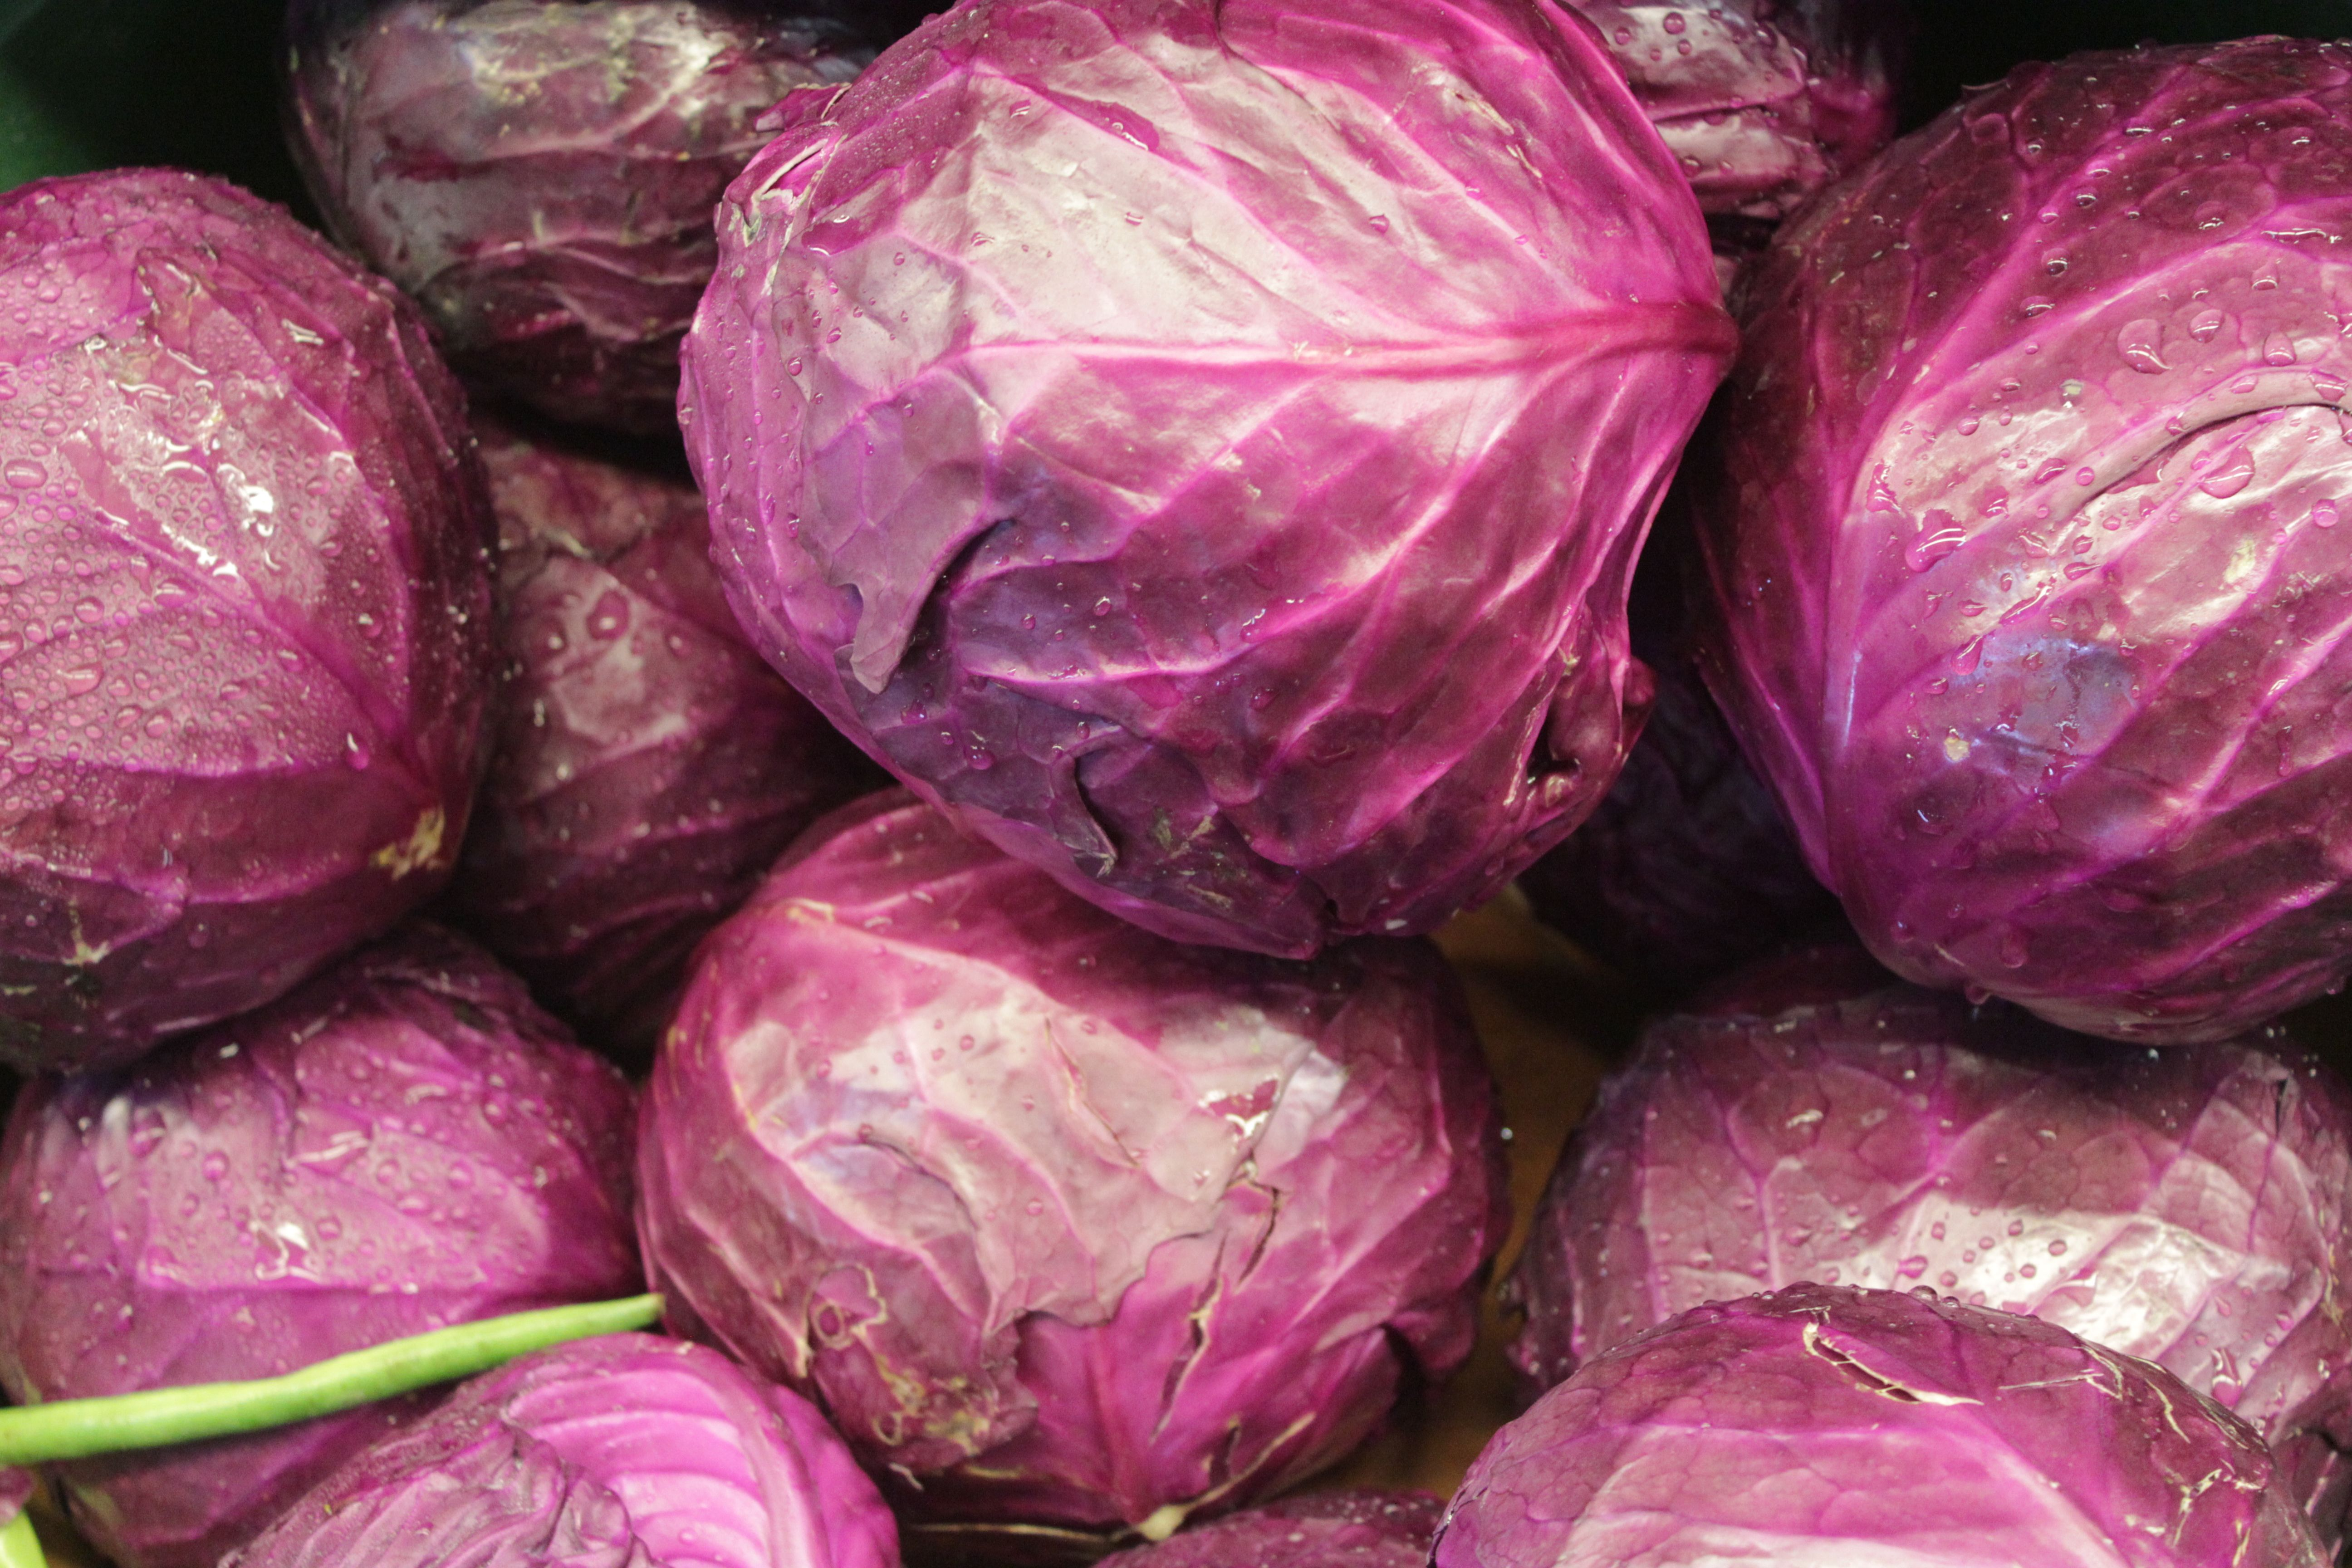 Cabbage! Fresh organic, and mighty tasty, gmo-free CABBAGE! Stop in today and grab a few and add a yummy kick to your salad. Fresh stock added in November 2014